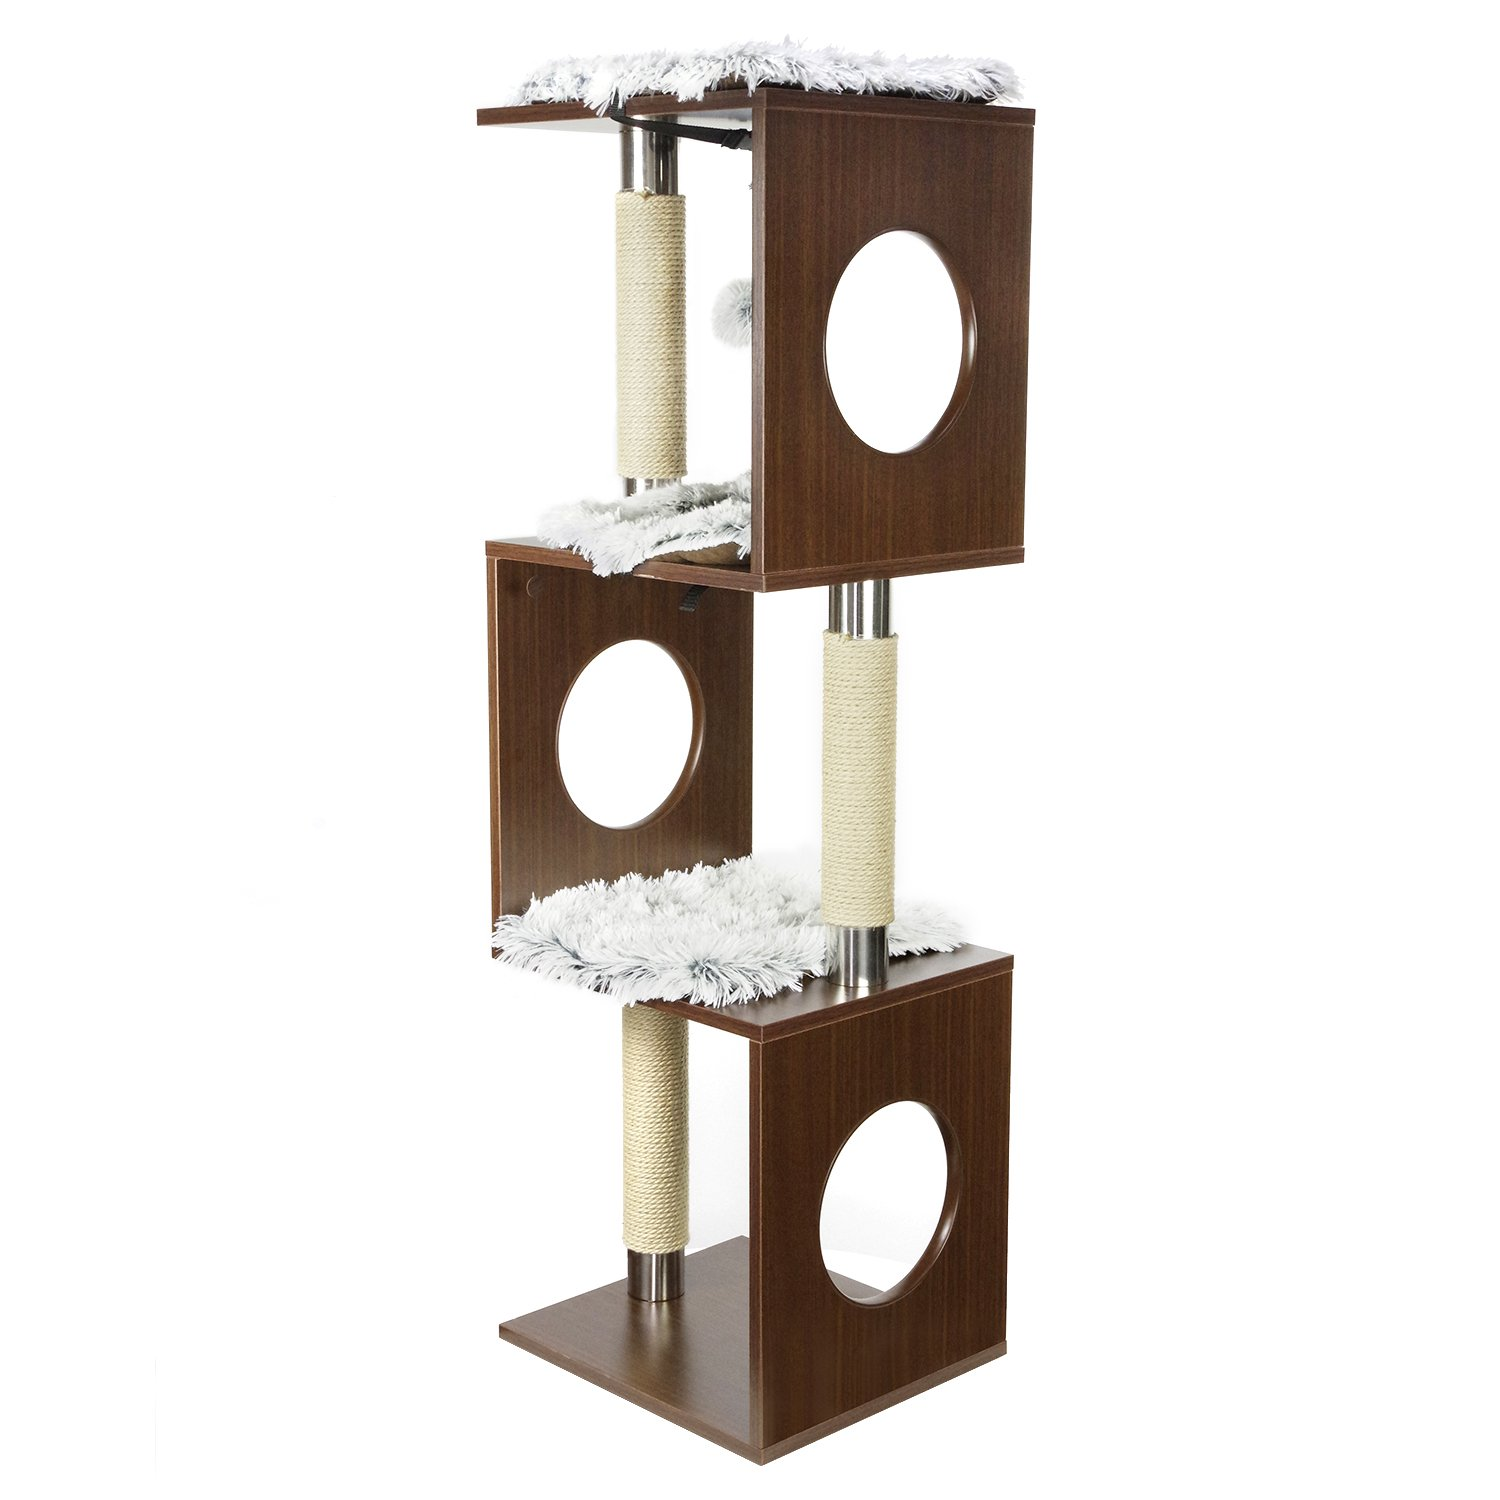 PARTYSAVING PET PALACE Multilevel Cat Tree Activity Tower Sisal Scratching Posts, Hanging Ball, Removable Mats, APL2082